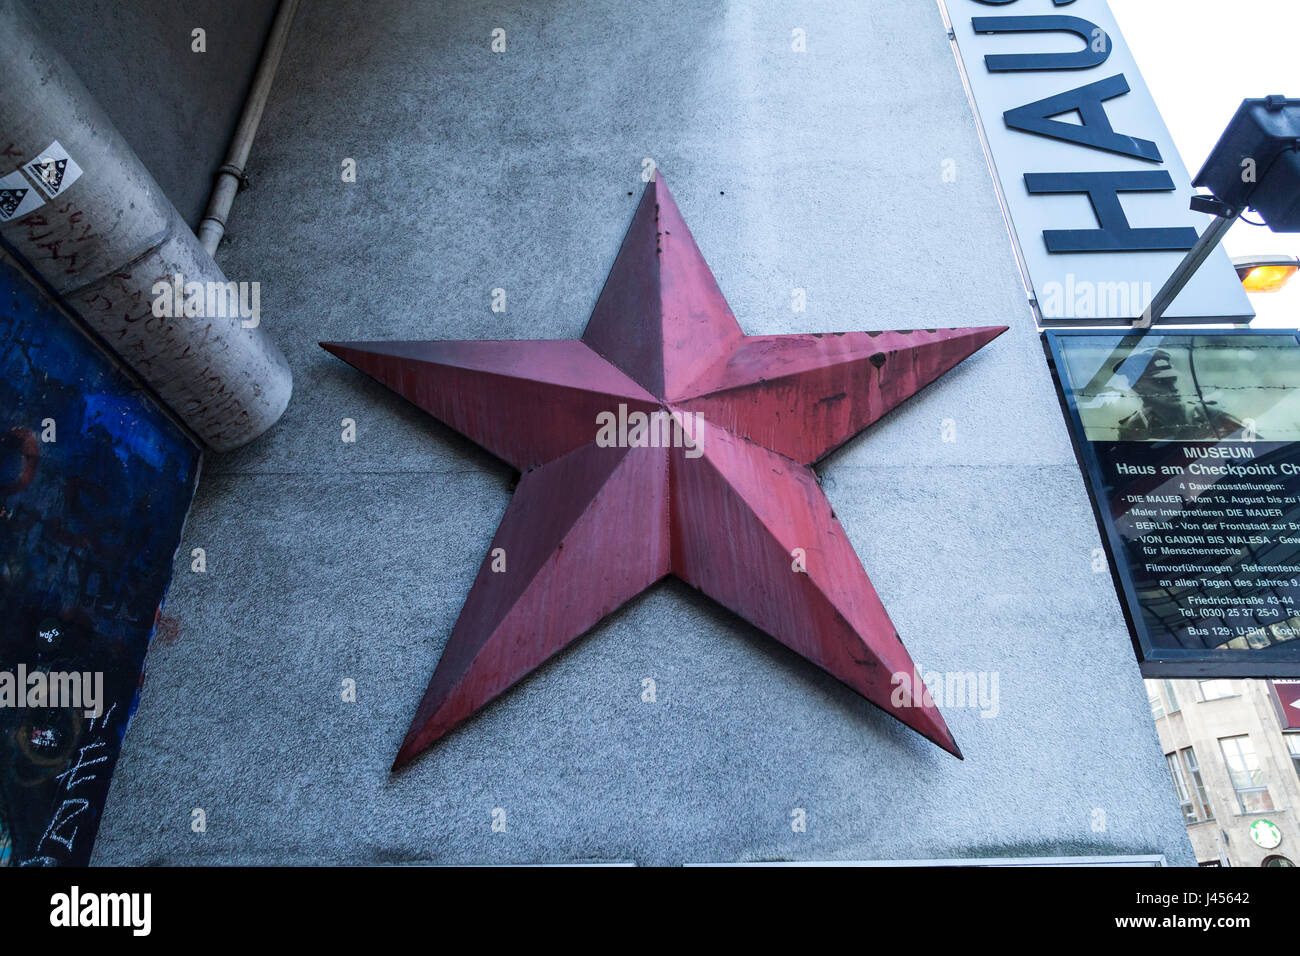 Red at souvenir at a DDR Museum at Checkpoint  Charlie in Berlin - Stock Image